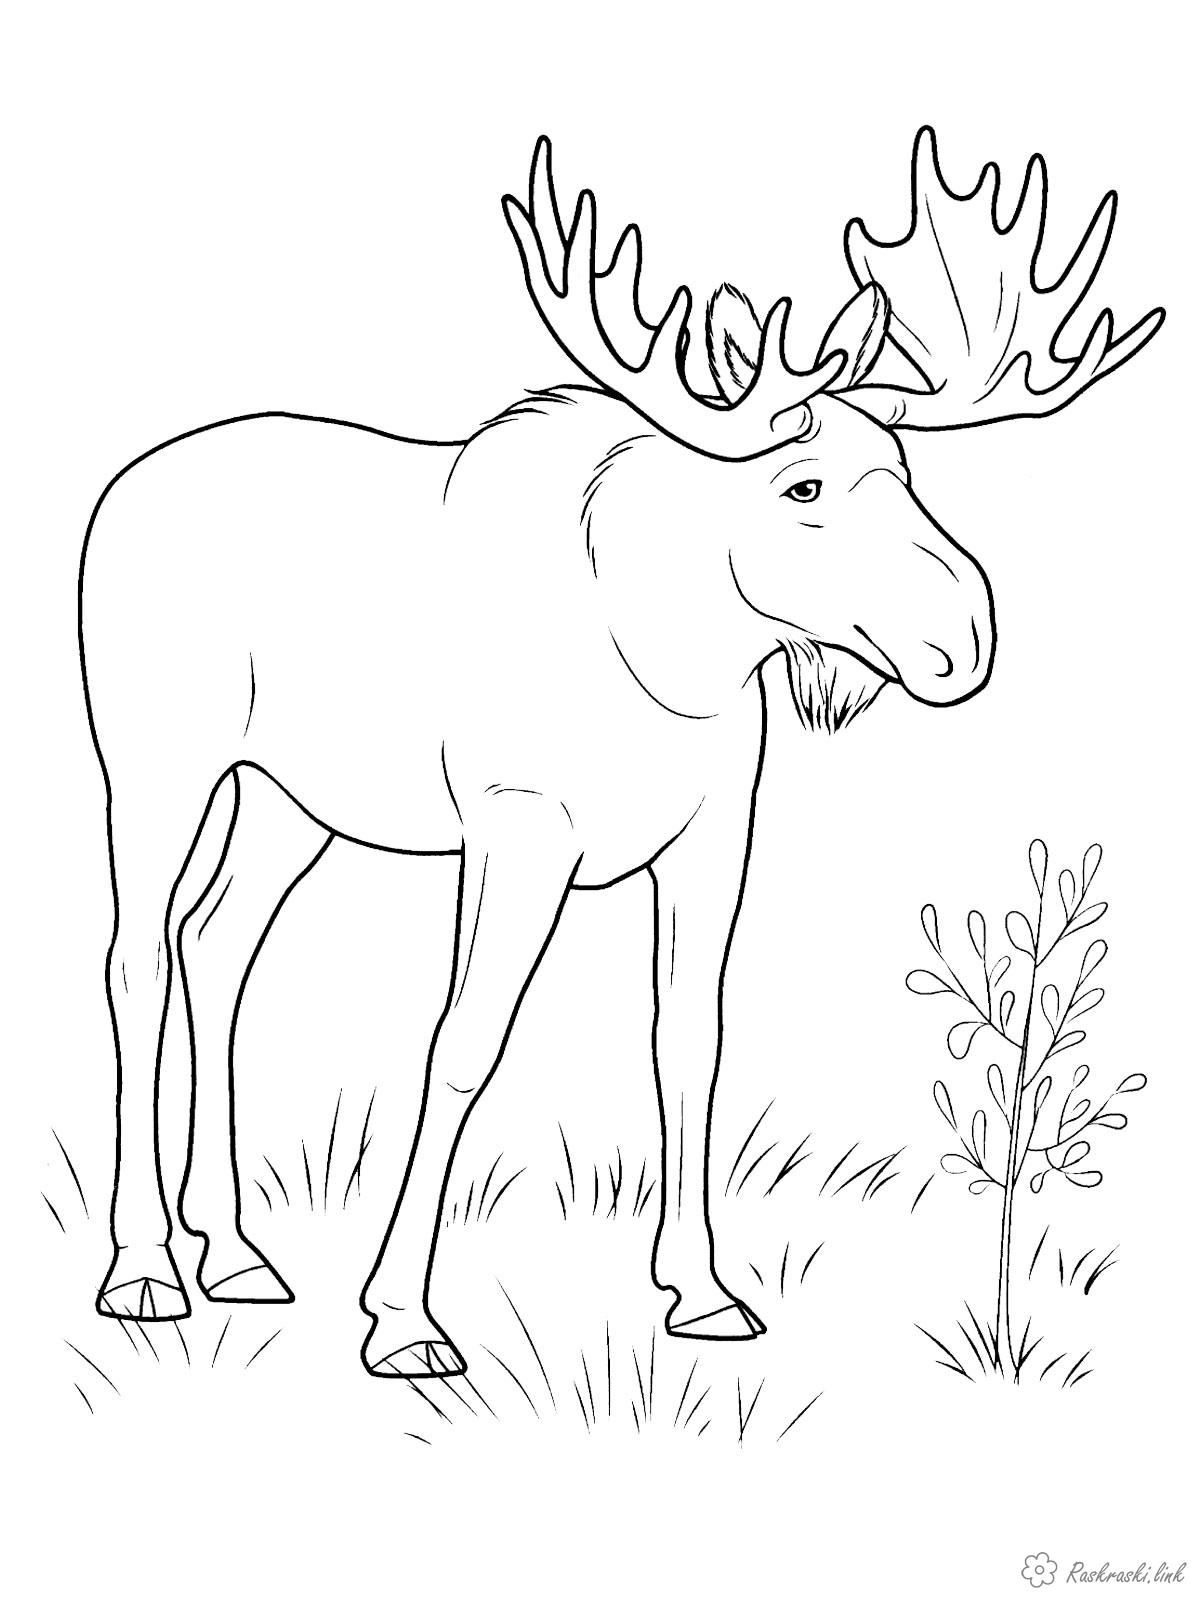 Coloring Forest animals coloring pages elk, forest animals, wild animals, herbivores horn